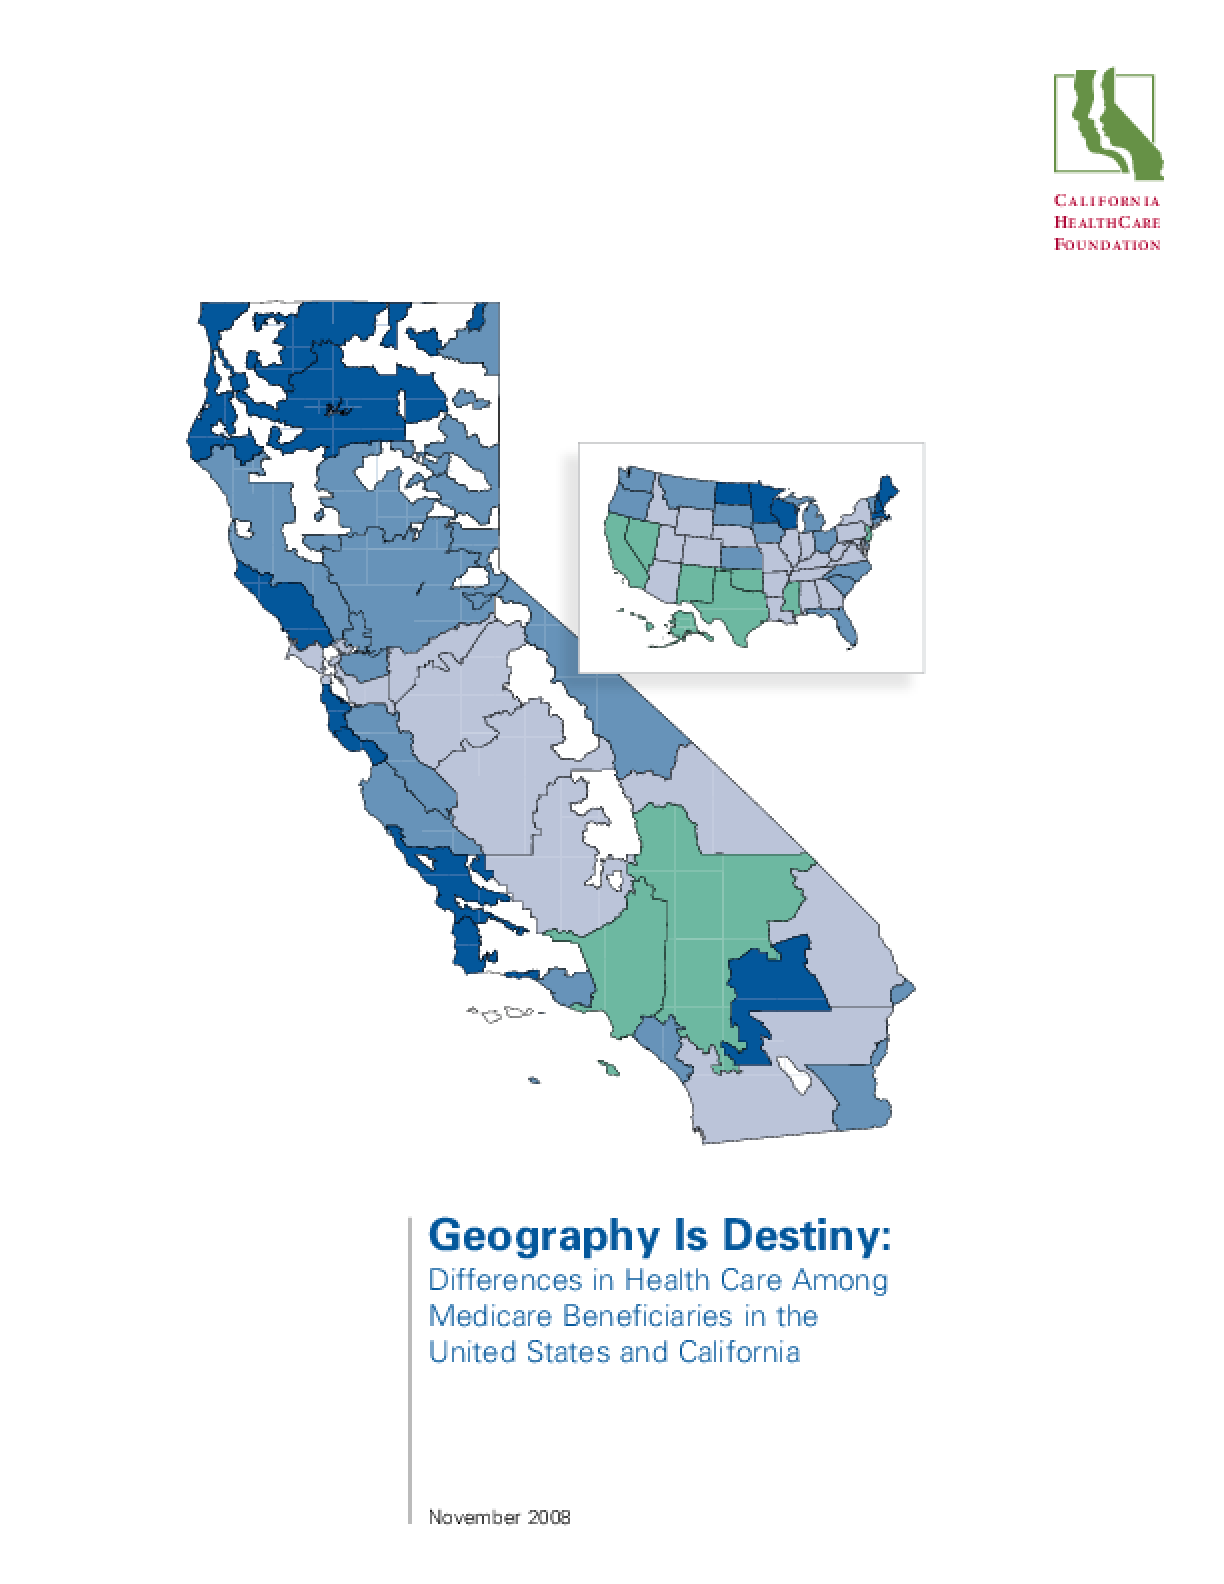 Geography Is Destiny: Differences in Health Care Among Medicare Beneficiaries in the United States and California